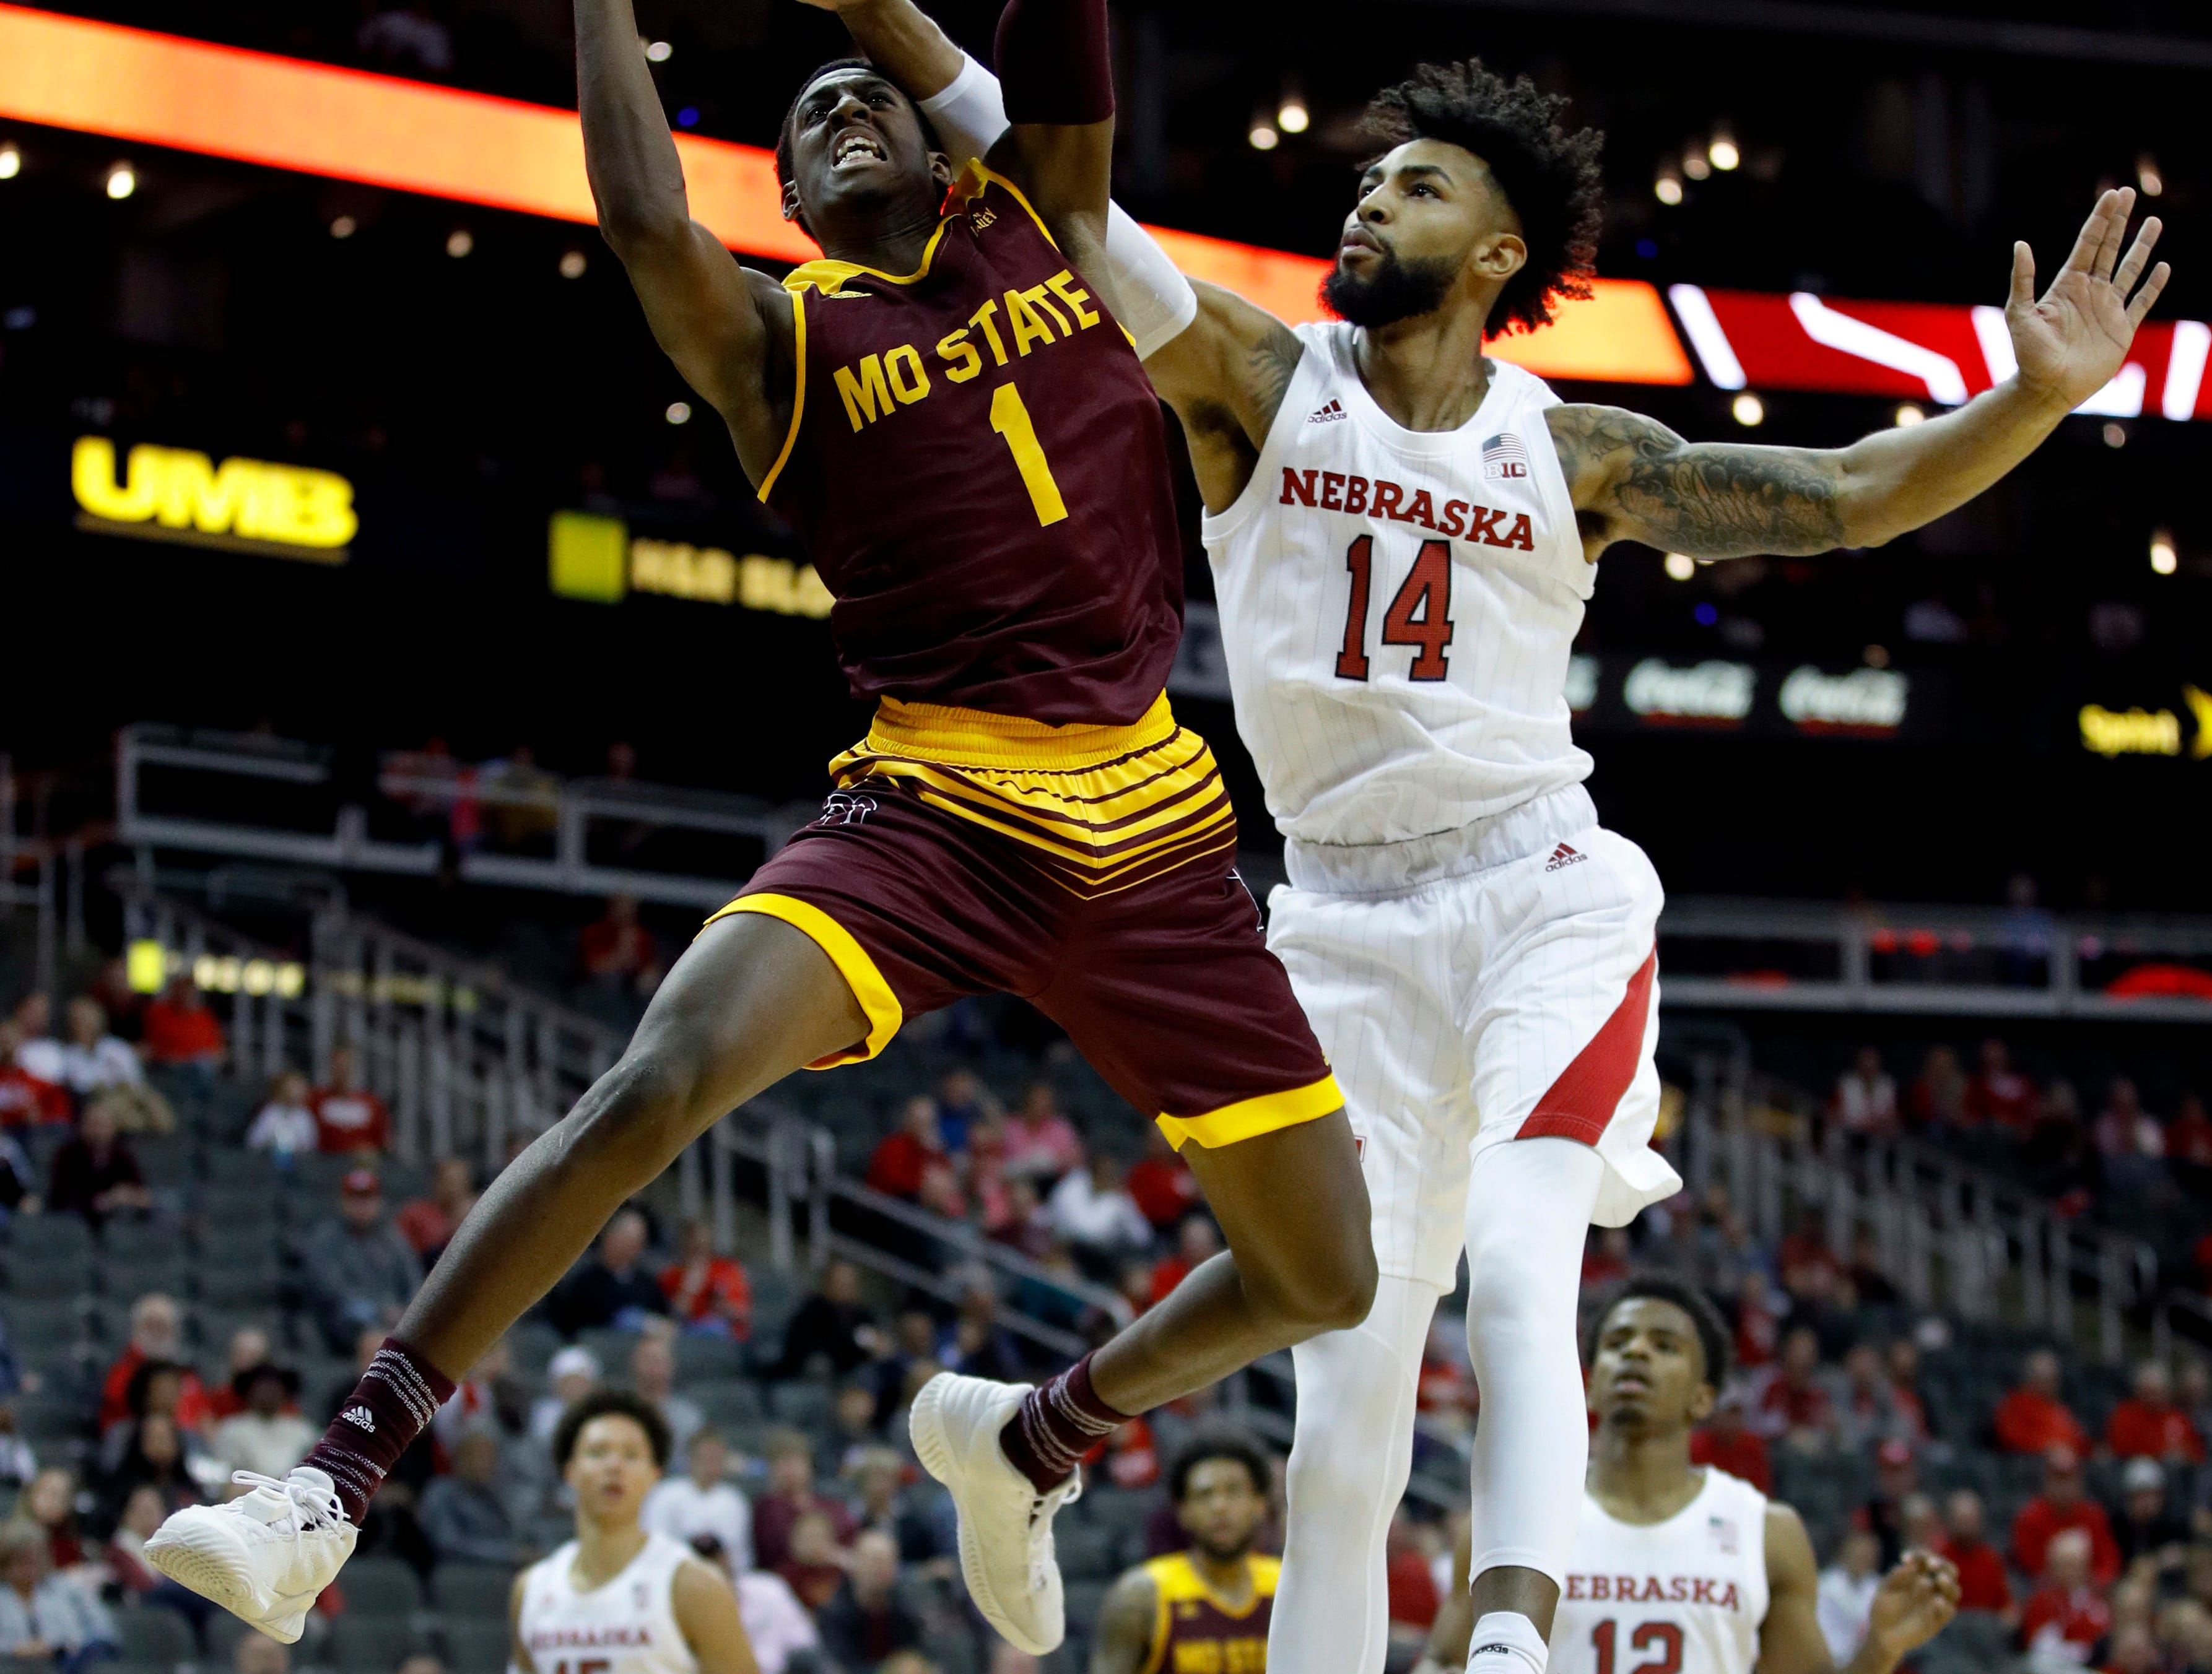 Nebraska's Isaac Copeland Jr. (14) tries to block a shot by Missouri State's Keandre Cook (1) during the second half of an NCAA college basketball game Monday, Nov. 19, 2018, in Kansas City, Mo. Nebraska won the game 85-62. (AP Photo/Charlie Riedel)